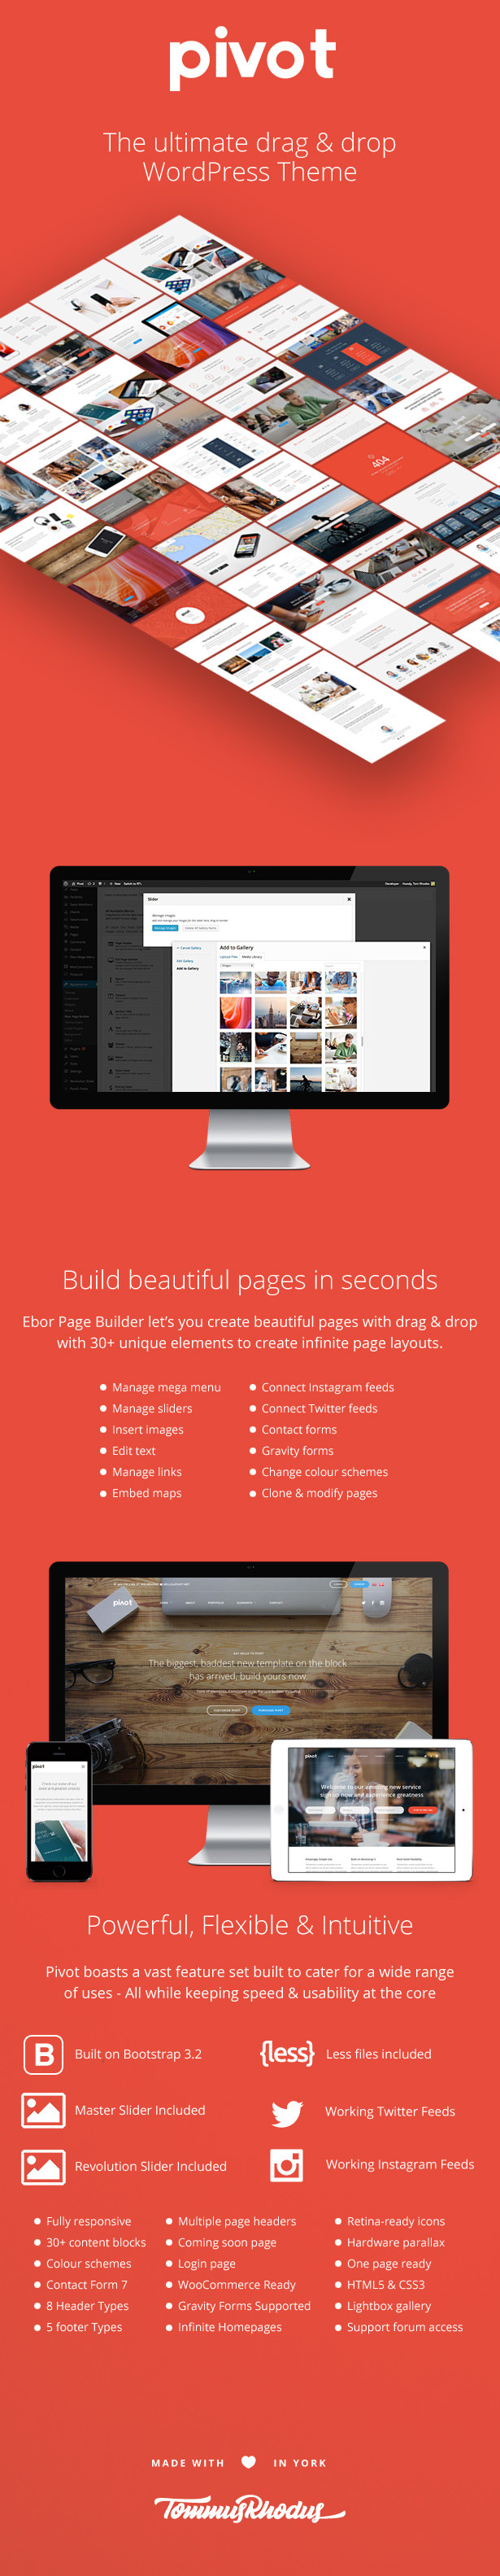 Pivot | Responsive Multipurpose WordPress Theme - 8